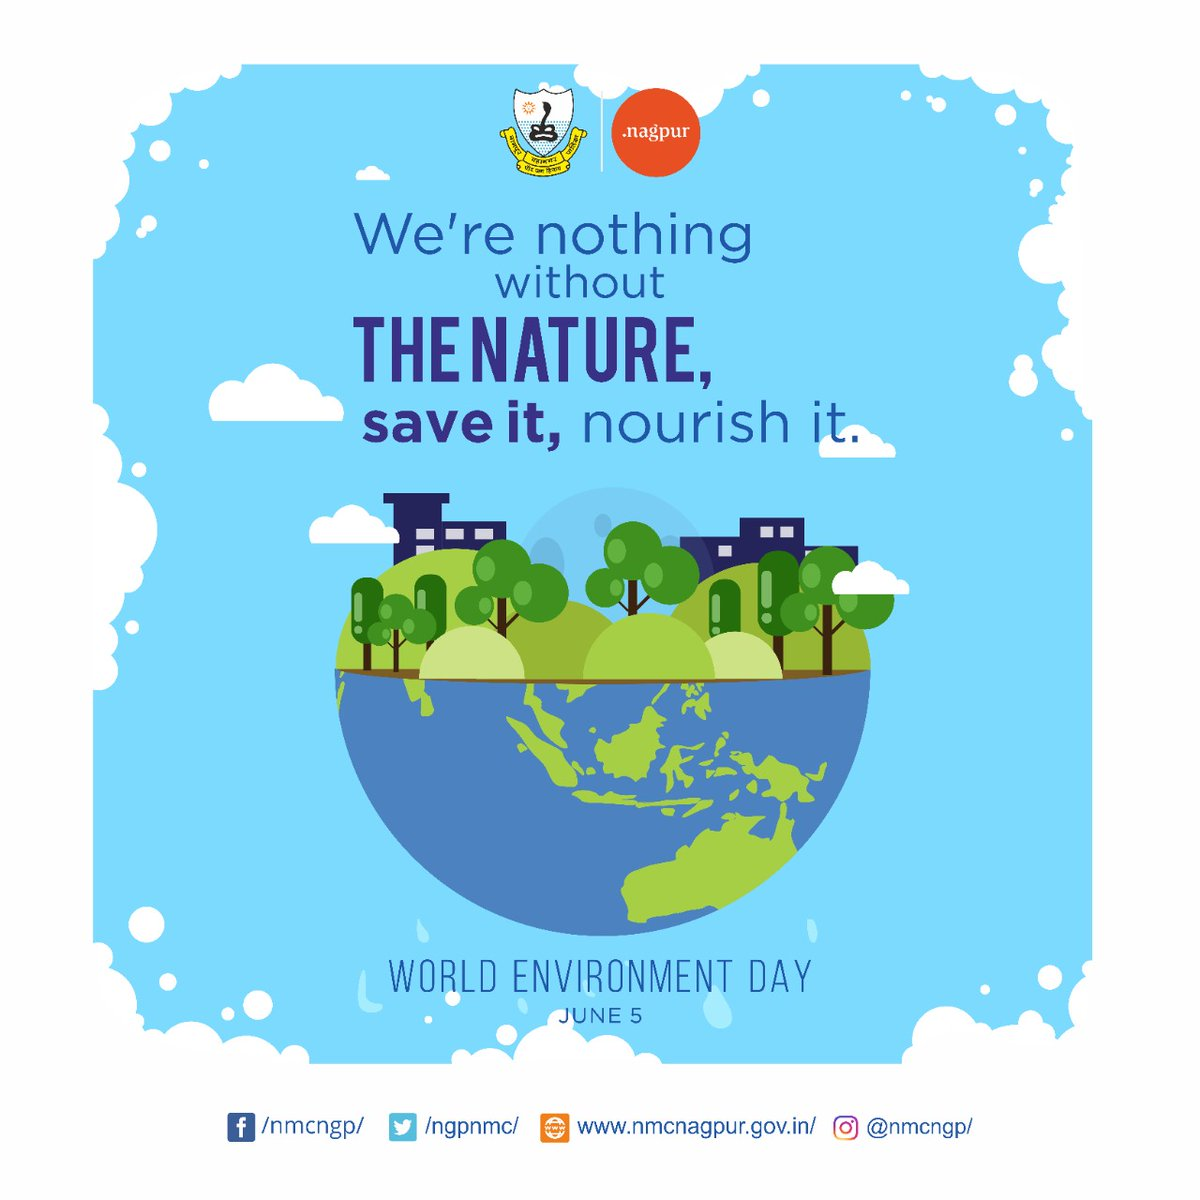 It is our planet that we need to save. This World Environment Day let's pledge to be more kind towards our mother Earth and nature.   #WorldEnvironmentDay2020 #nature #EnvironmentDay https://t.co/Y0DZw9SSKD